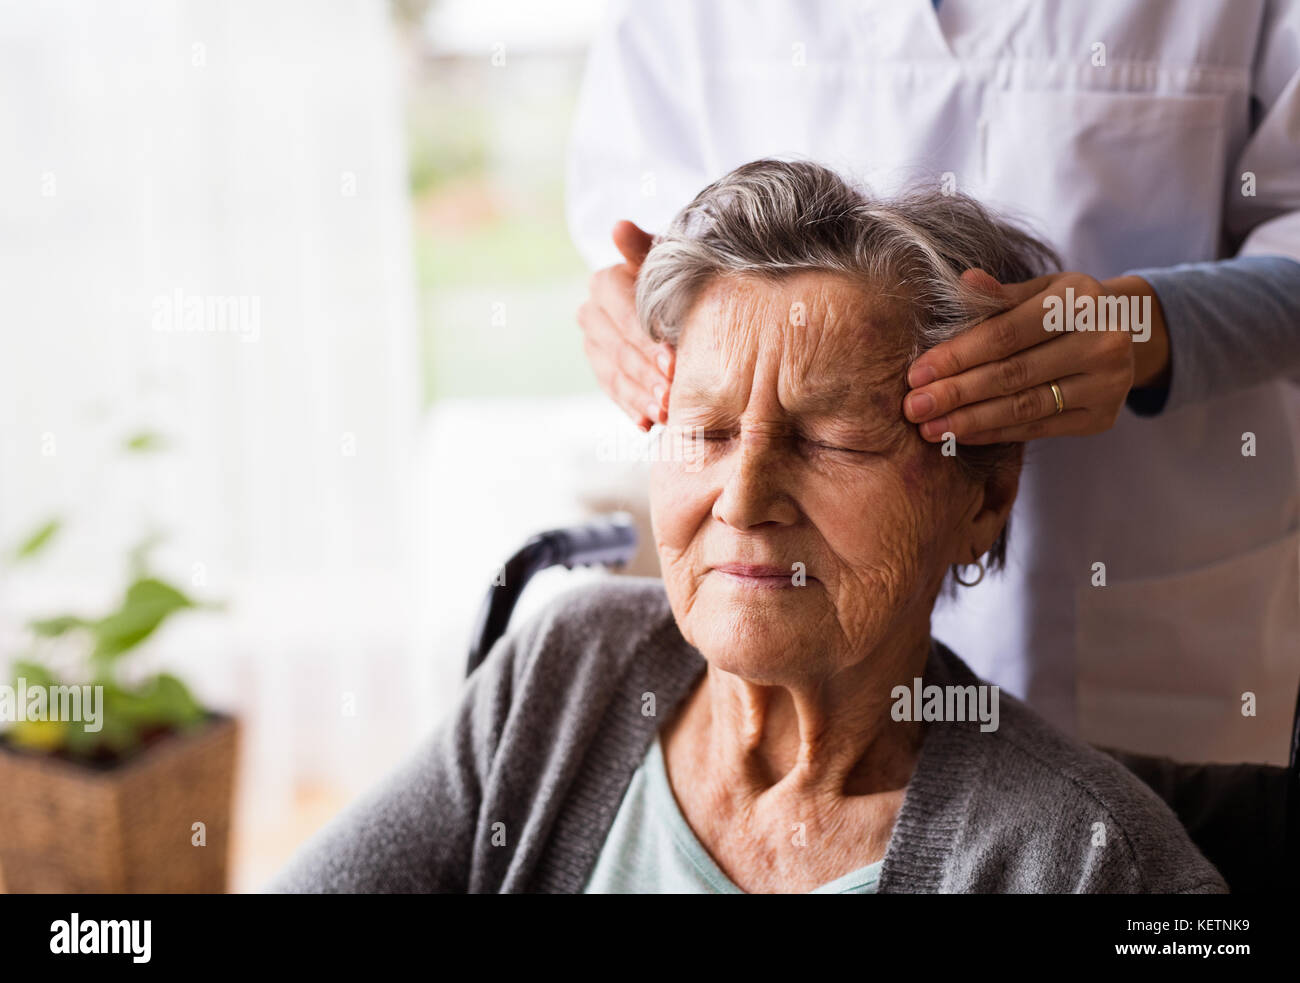 Health visitor and a senior woman during home visit. - Stock Image